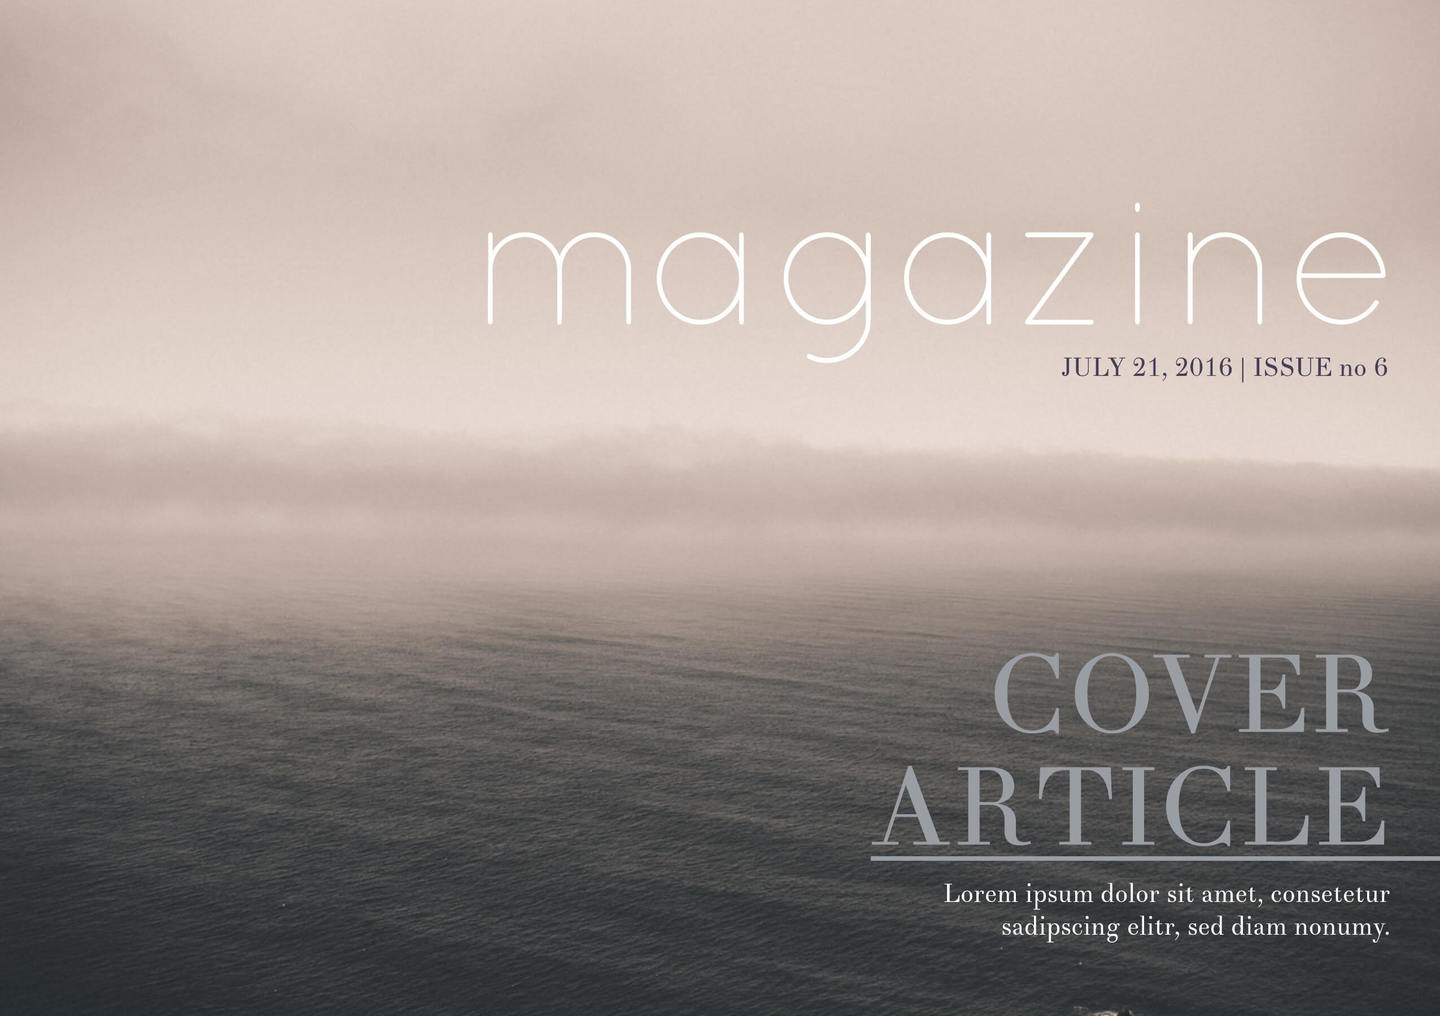 Free Magazine Templates & Layouts [14 Free Templates]